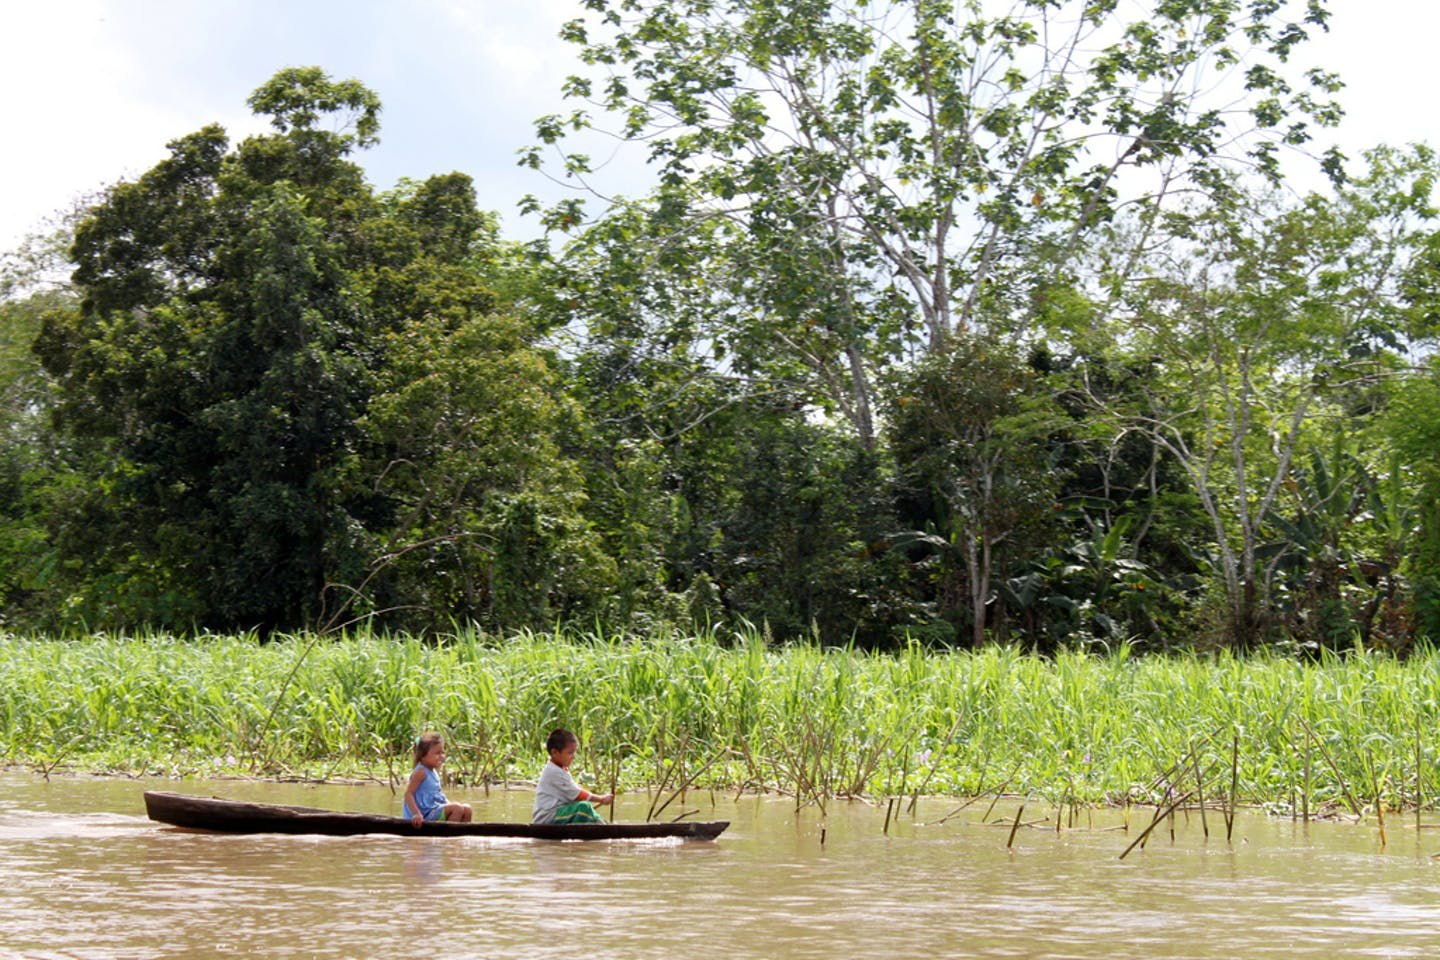 Children in a boat in the Colombian Amazon.